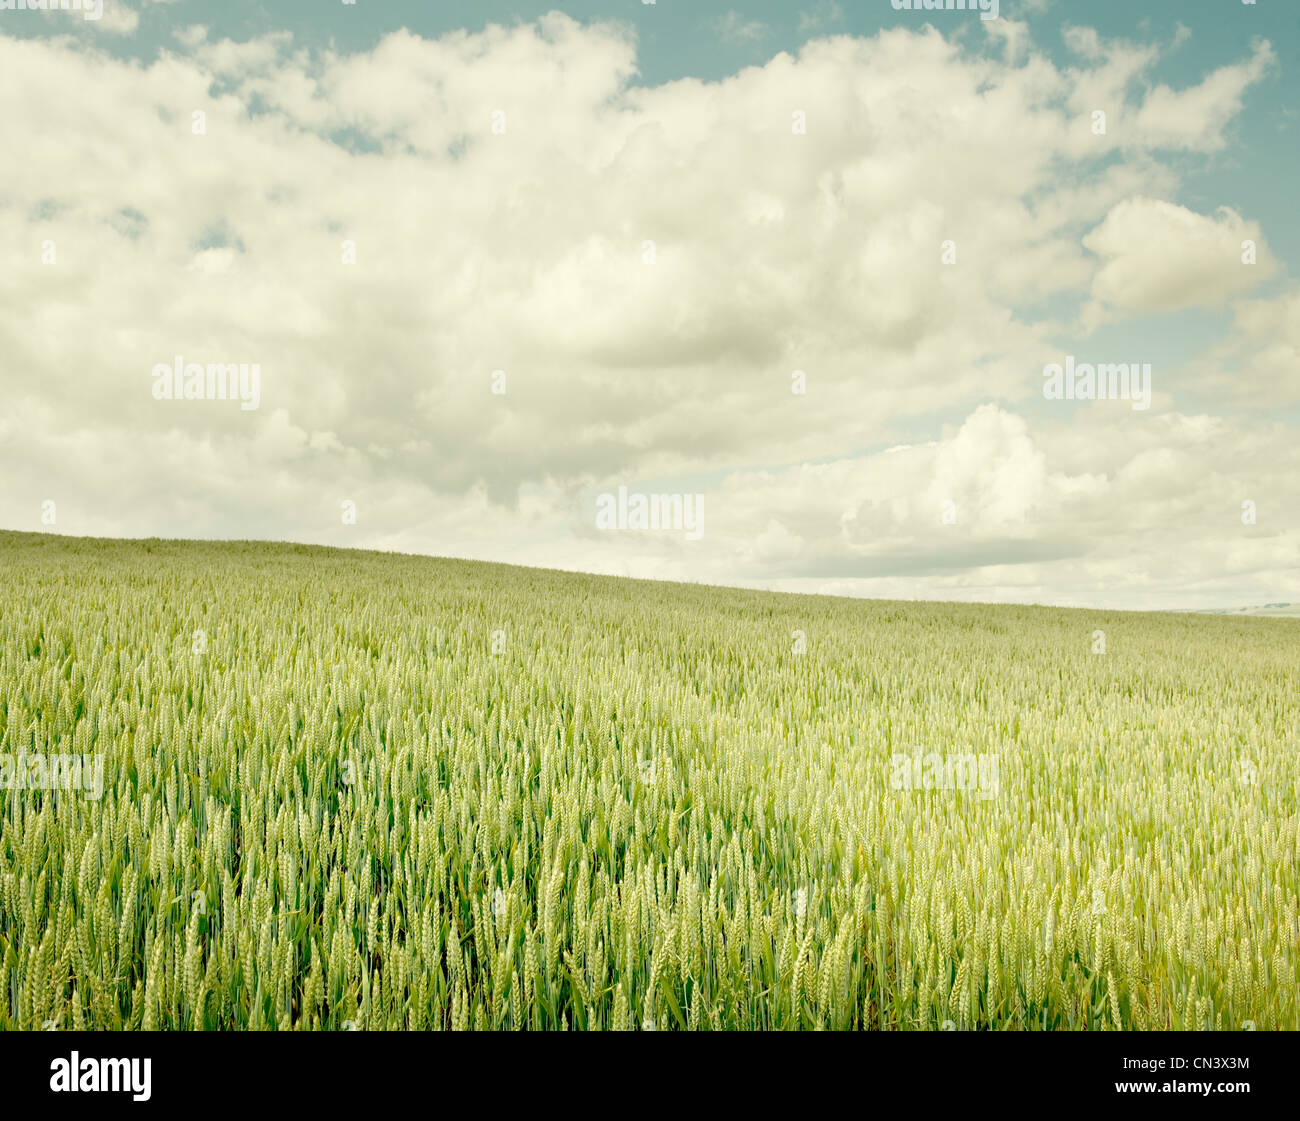 A wheat field on a summer's day - Stock Image